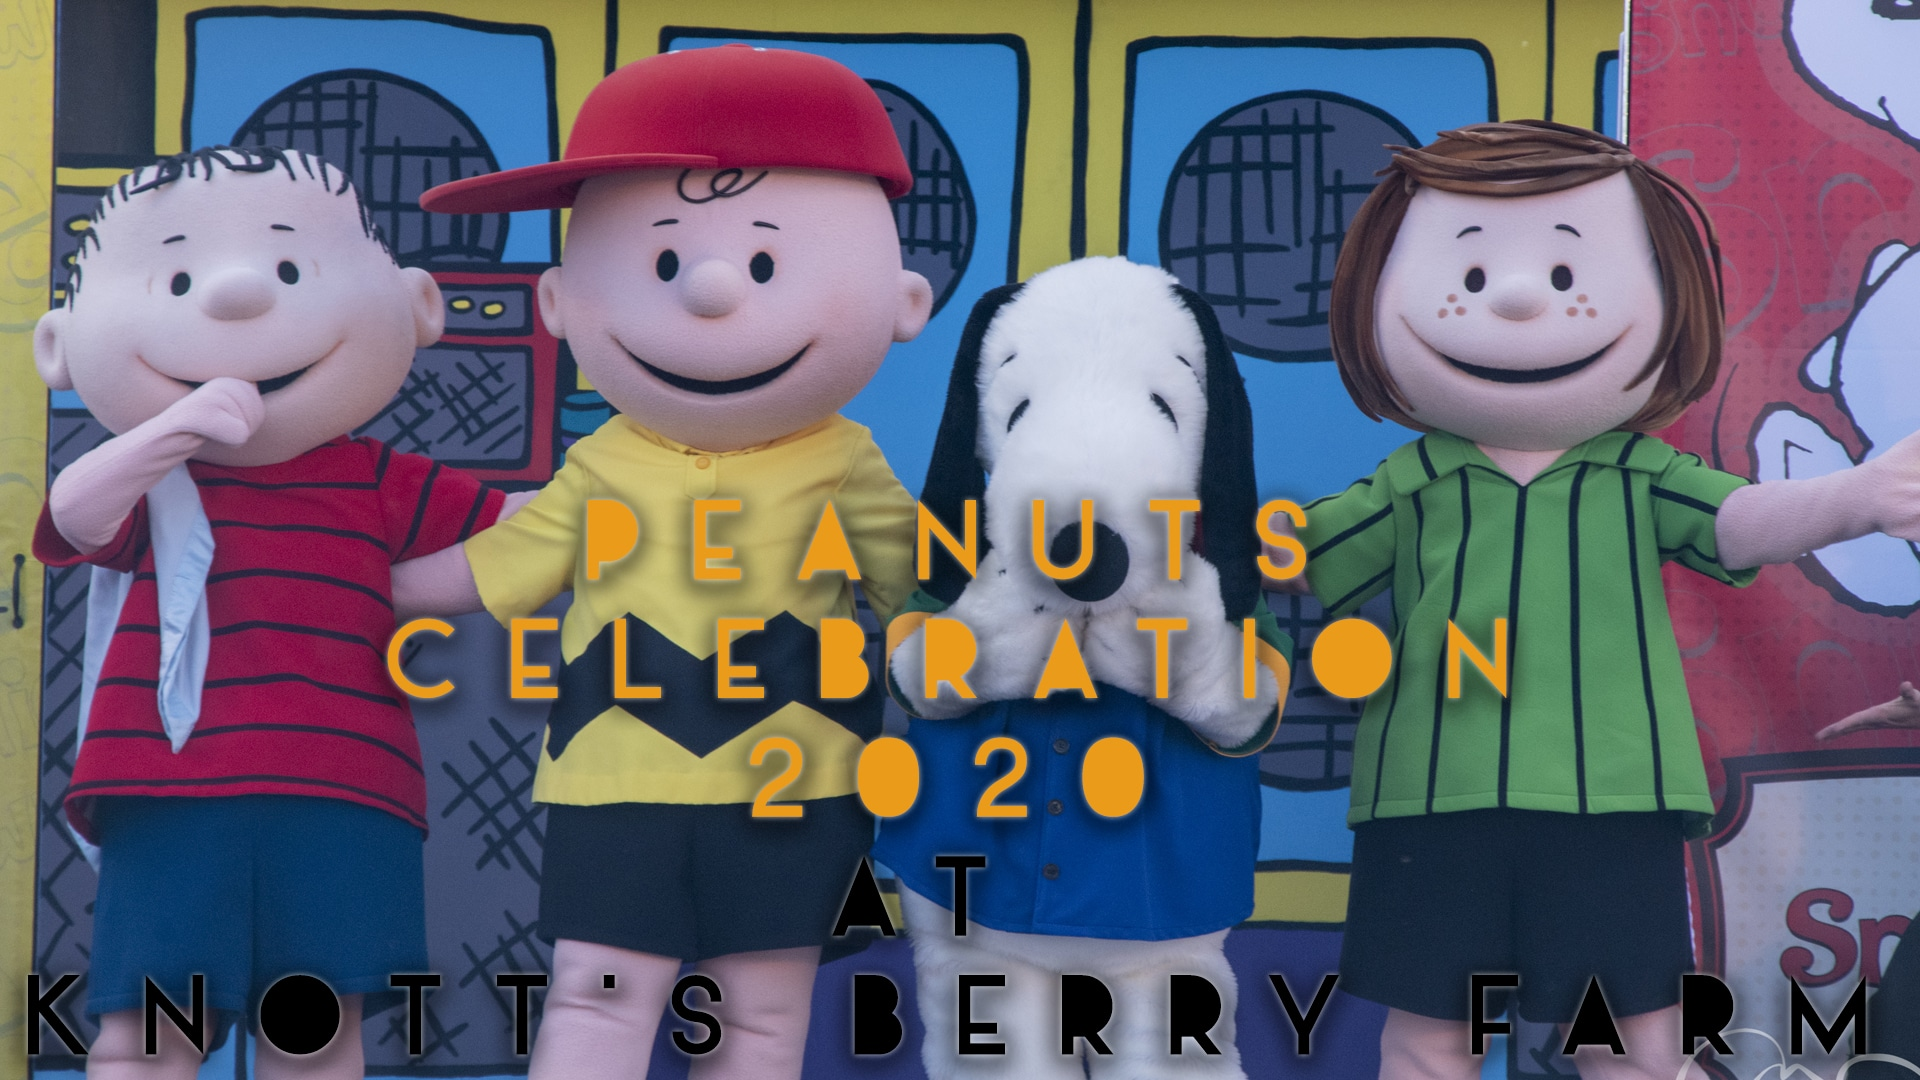 Peanuts Celebration 2020 at Knott's Berry Farm Brings Great Family Fun and Snoopy